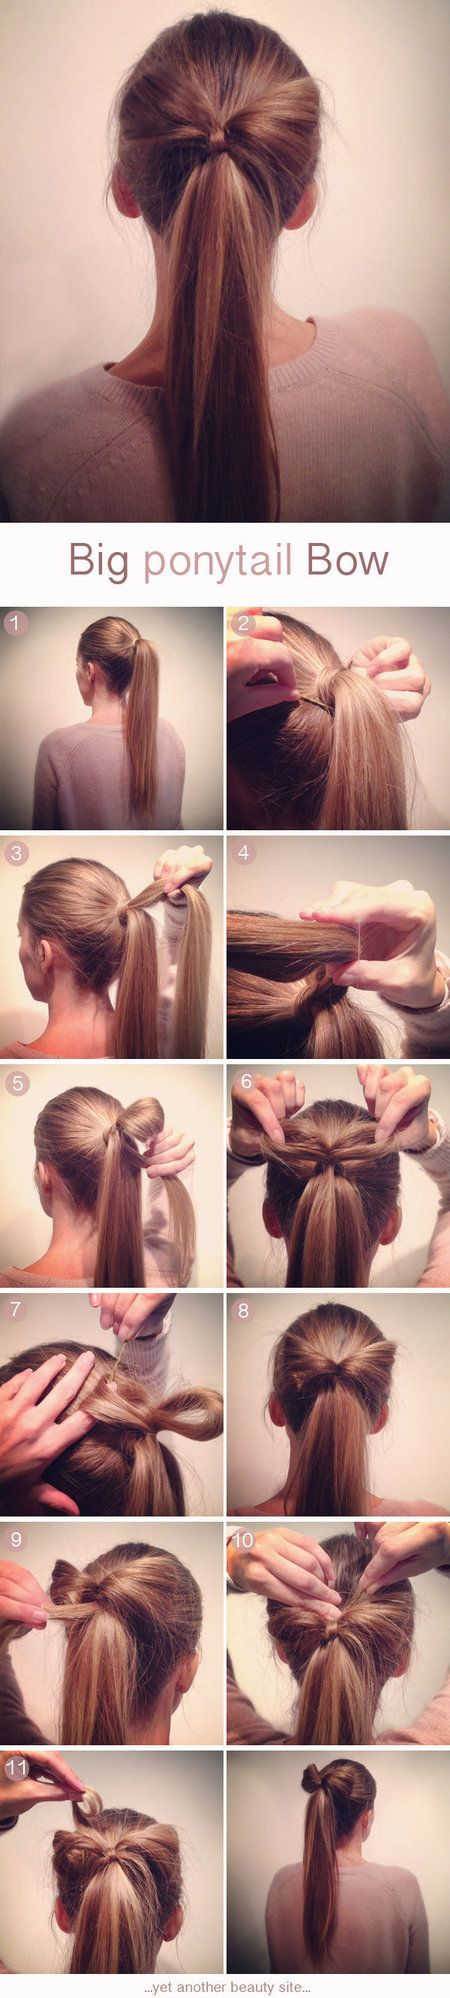 How to do a Big Ponytail Bow #yetanotherbeautysite #hairtutorial #howto